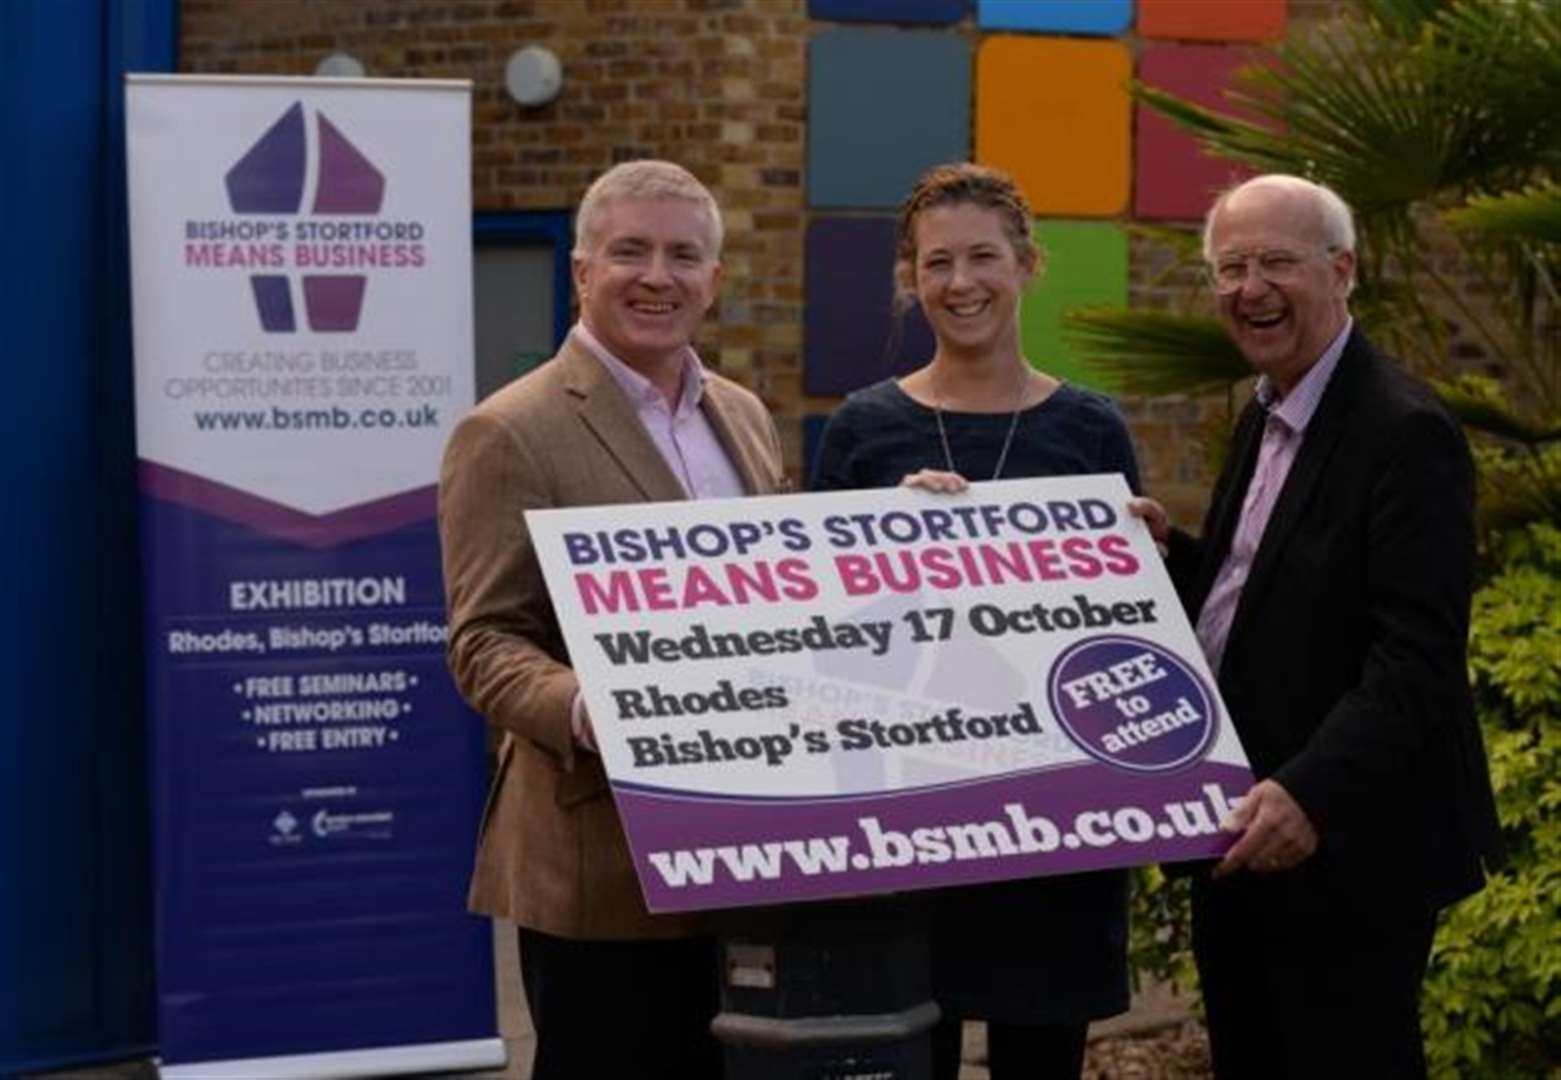 Chocolate and champagne to be won at free Bishop's Stortford Means Business event at Rhodes